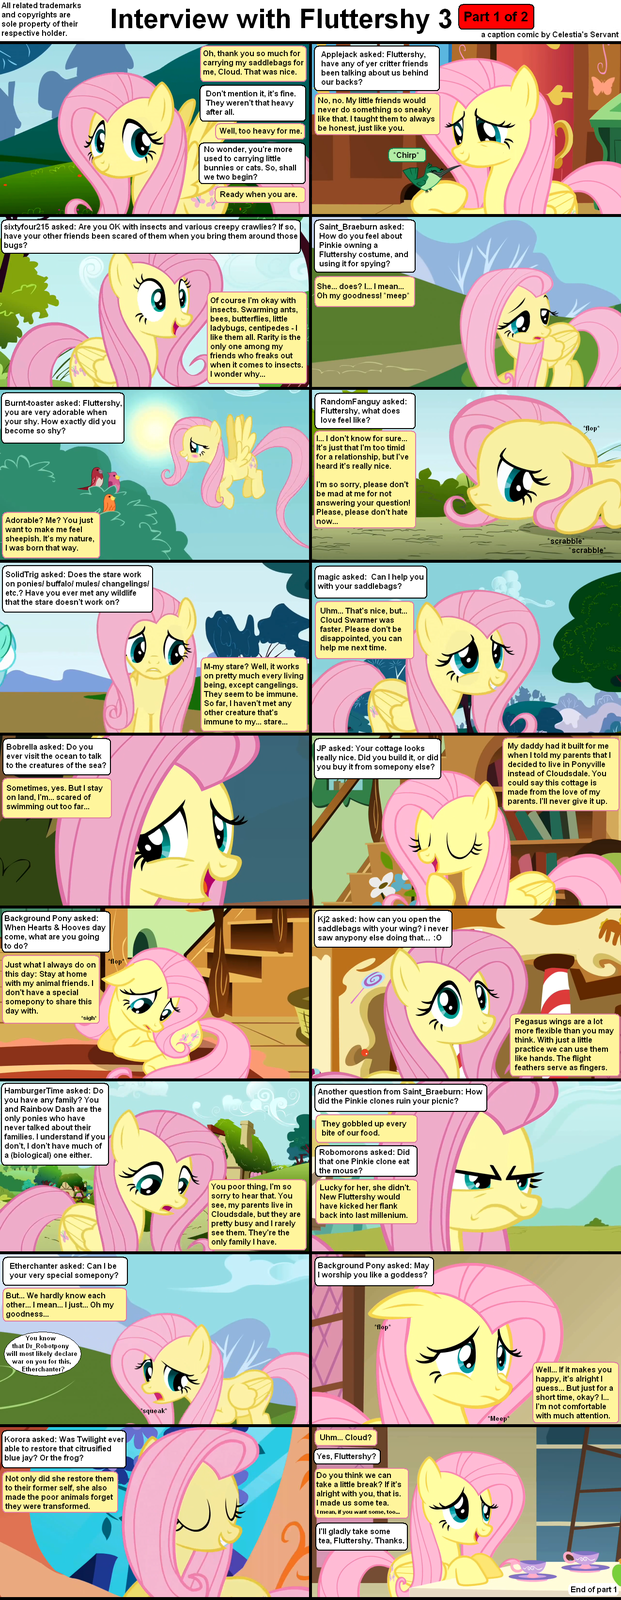 Interview with Fluttershy 3